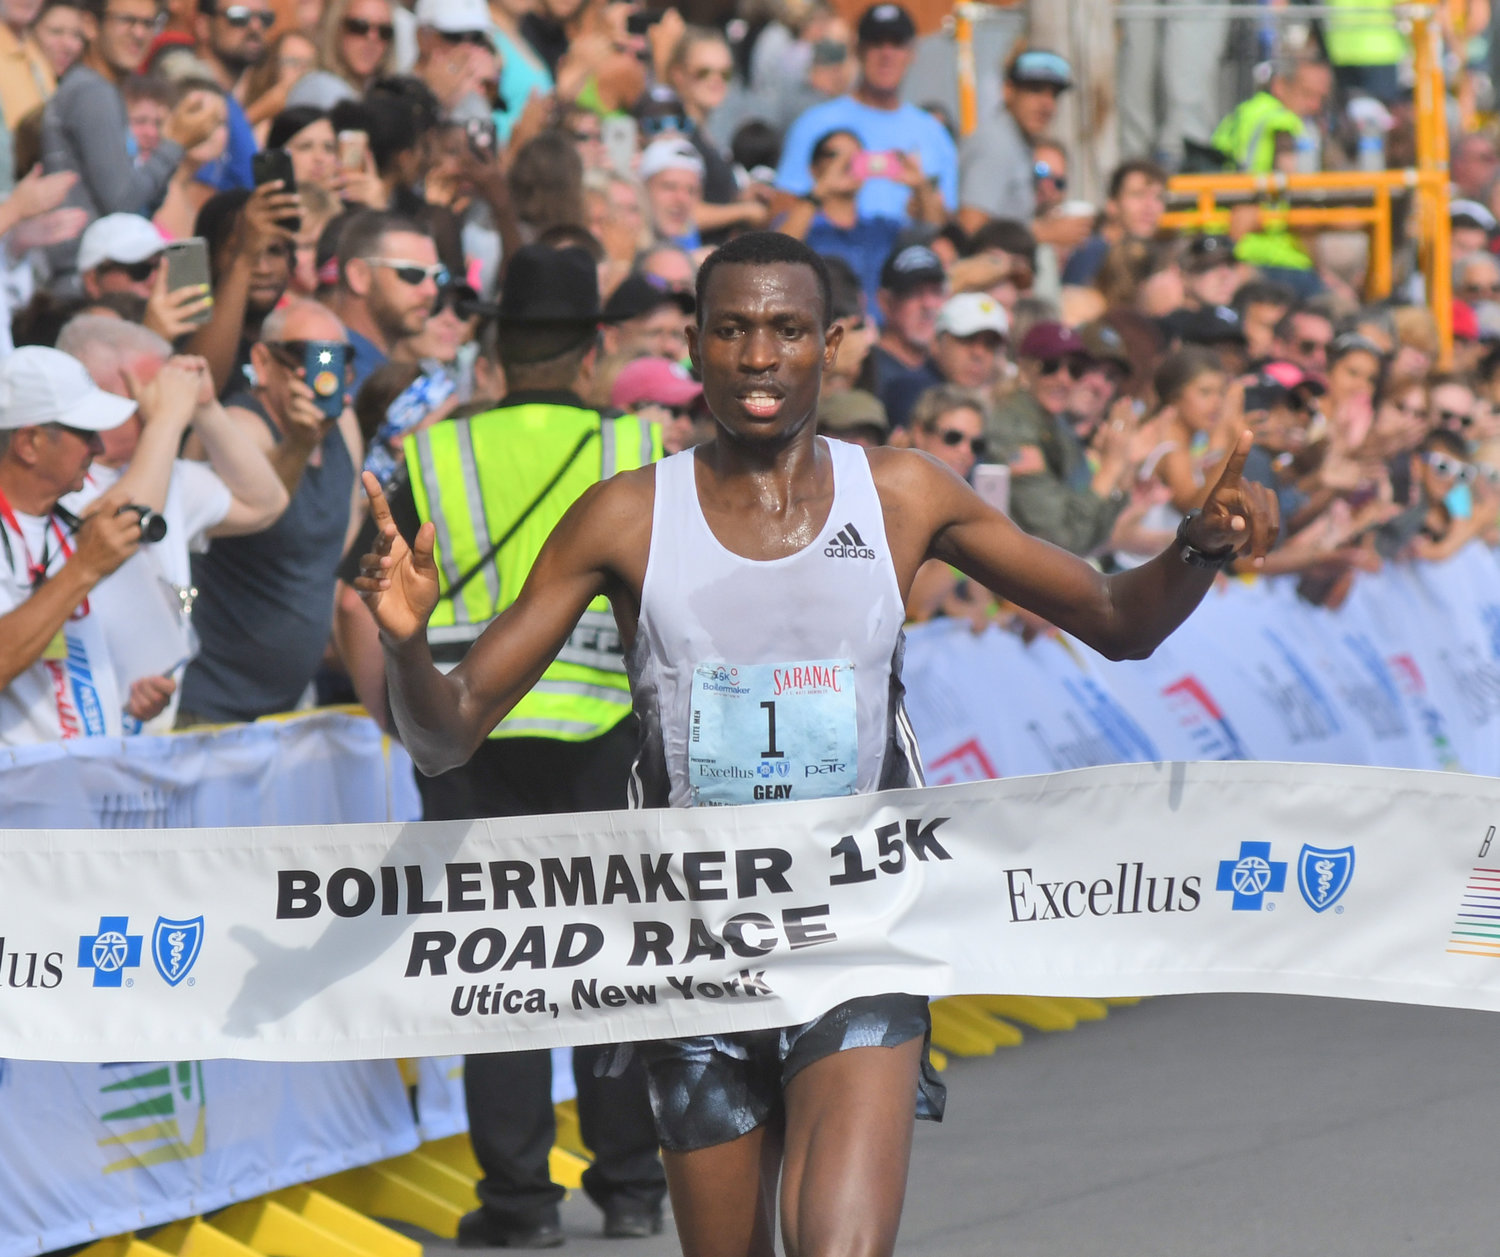 BACK-TO-BACK CHAMP — Gabriel Geay of Tanzania won his second straight Boilermaker 15K on Sunday, finishing in 43:36. The 22-year-old was three seconds ahead of Mohamed Reda El Aaraby of Morocco.